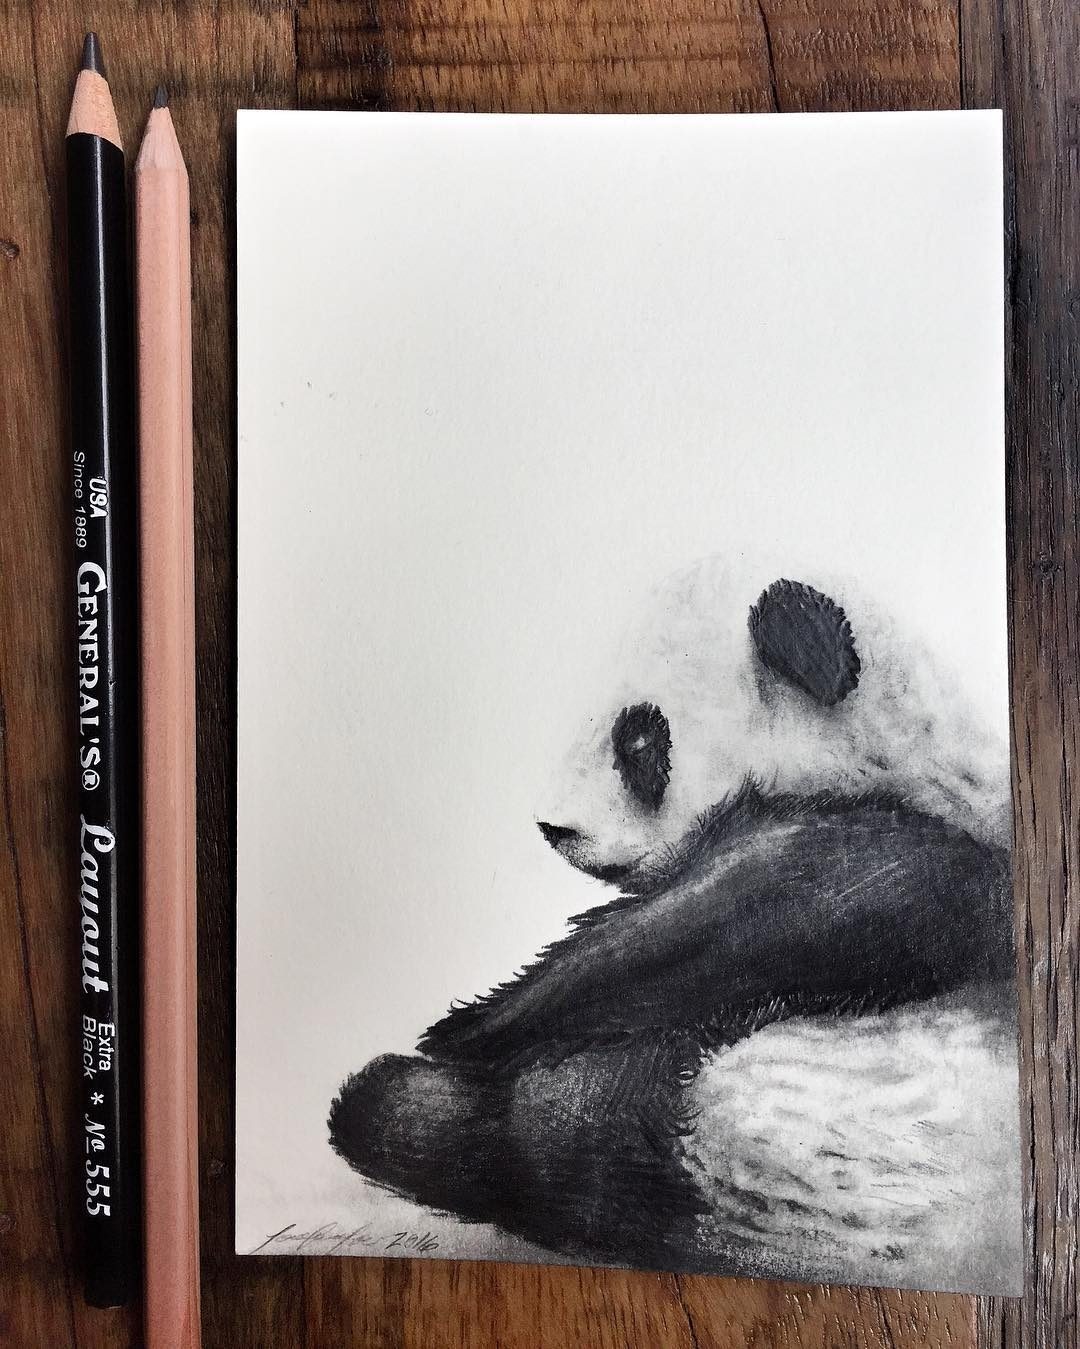 13-Panda-Jonathan-Martinez-Art-of-the-Endangered-Paintings-and-Drawings-www-designstack-co